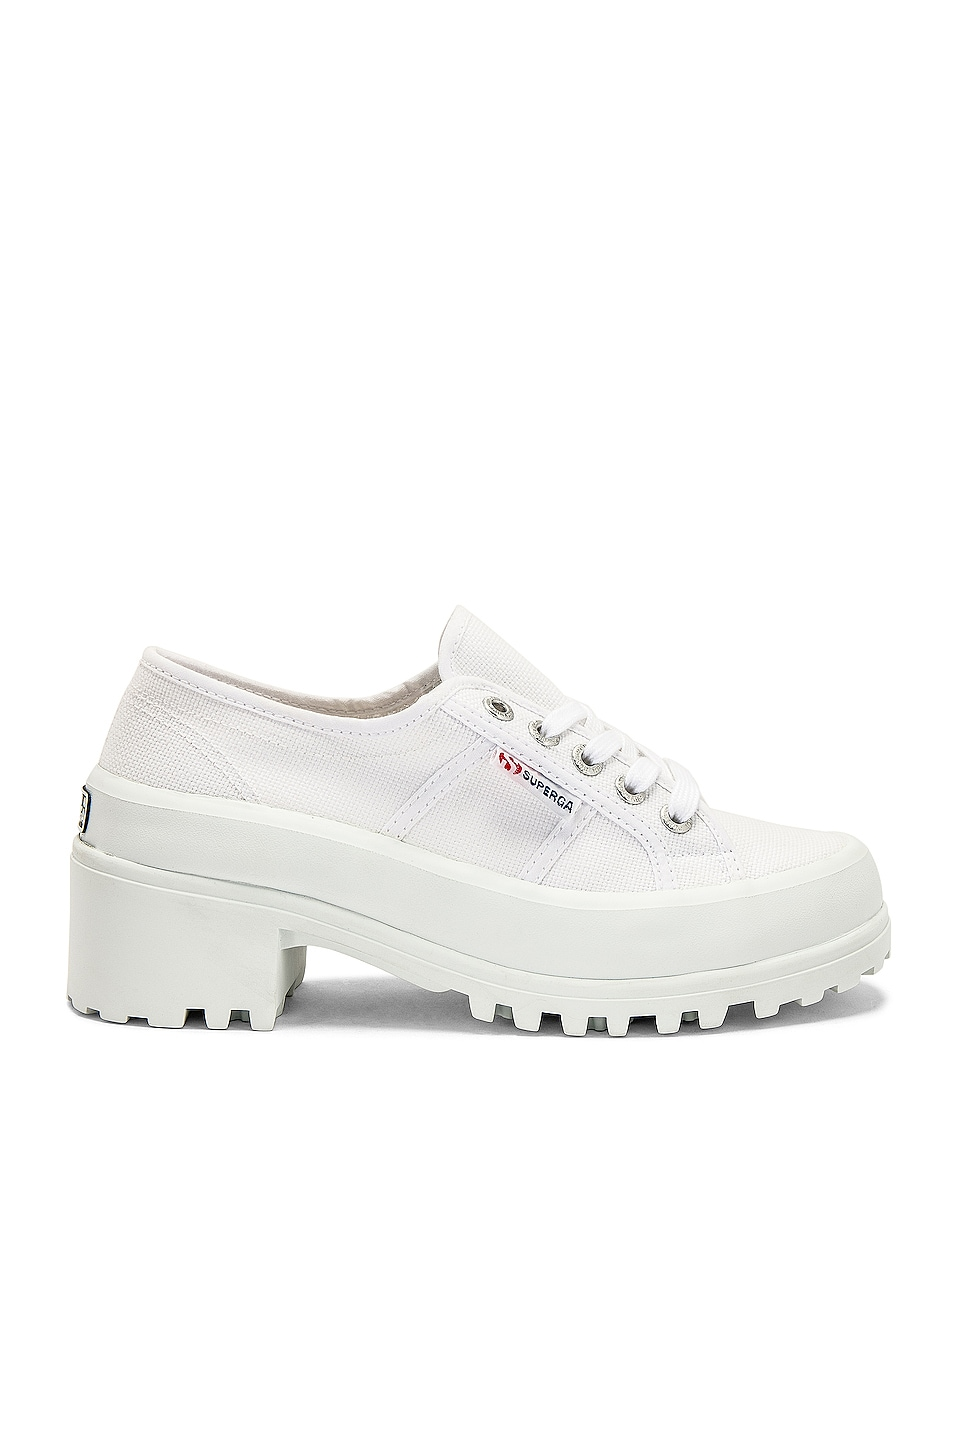 Superga SNEAKERS 4850 COTW